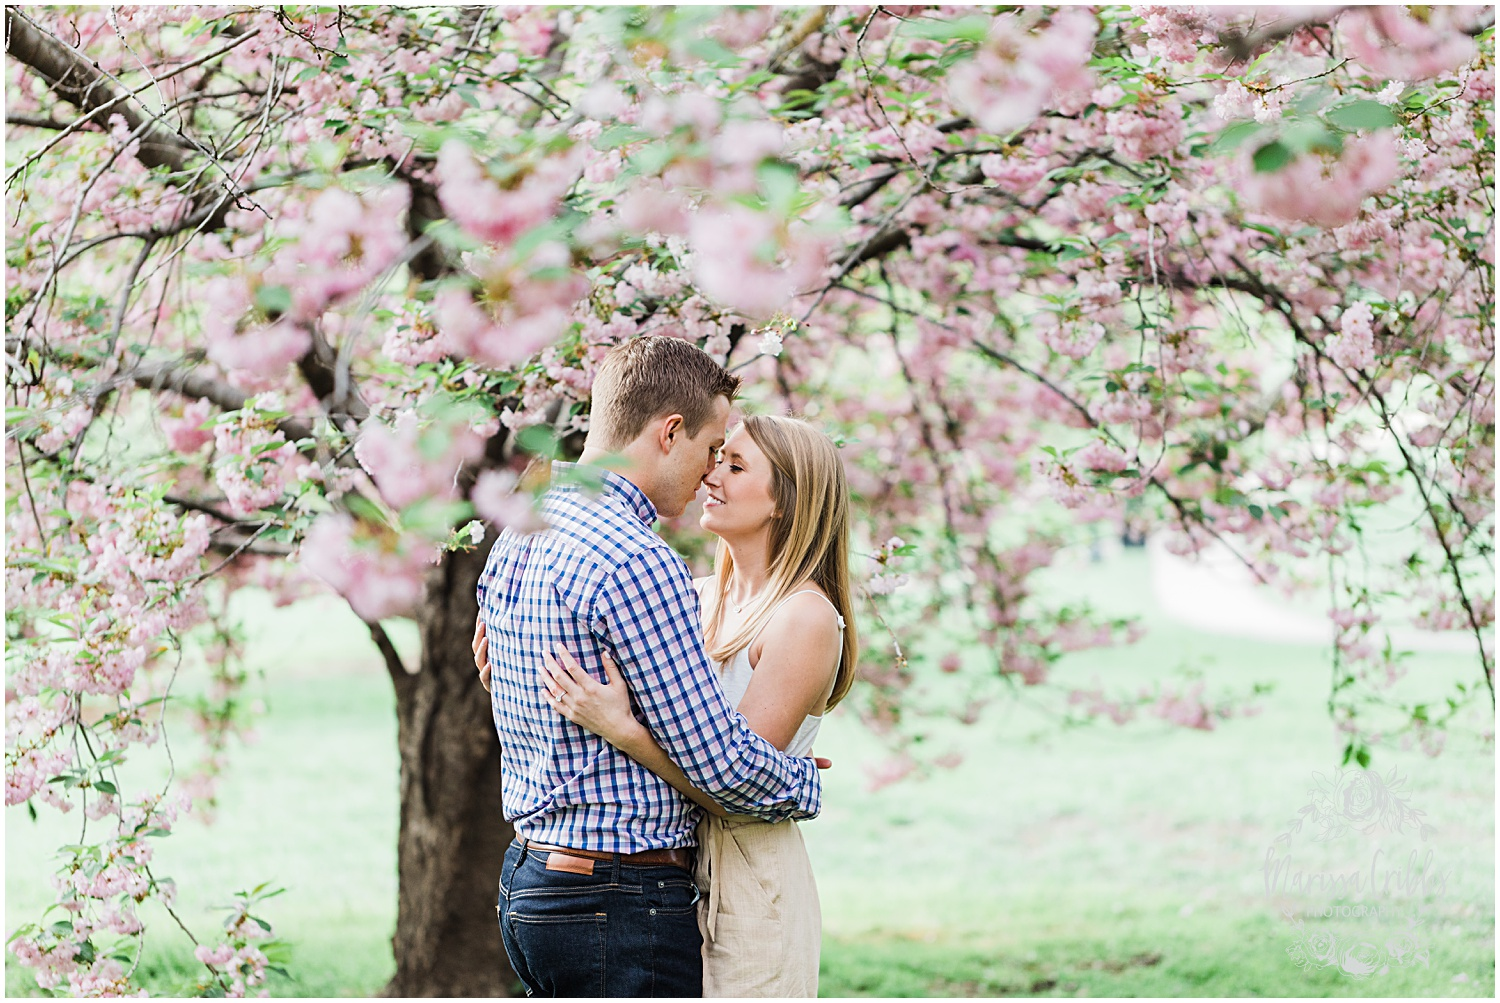 MADDY & KYLE ENGAGEMENT | MARISSA CRIBBS PHOTOGRAPHY_7607.jpg